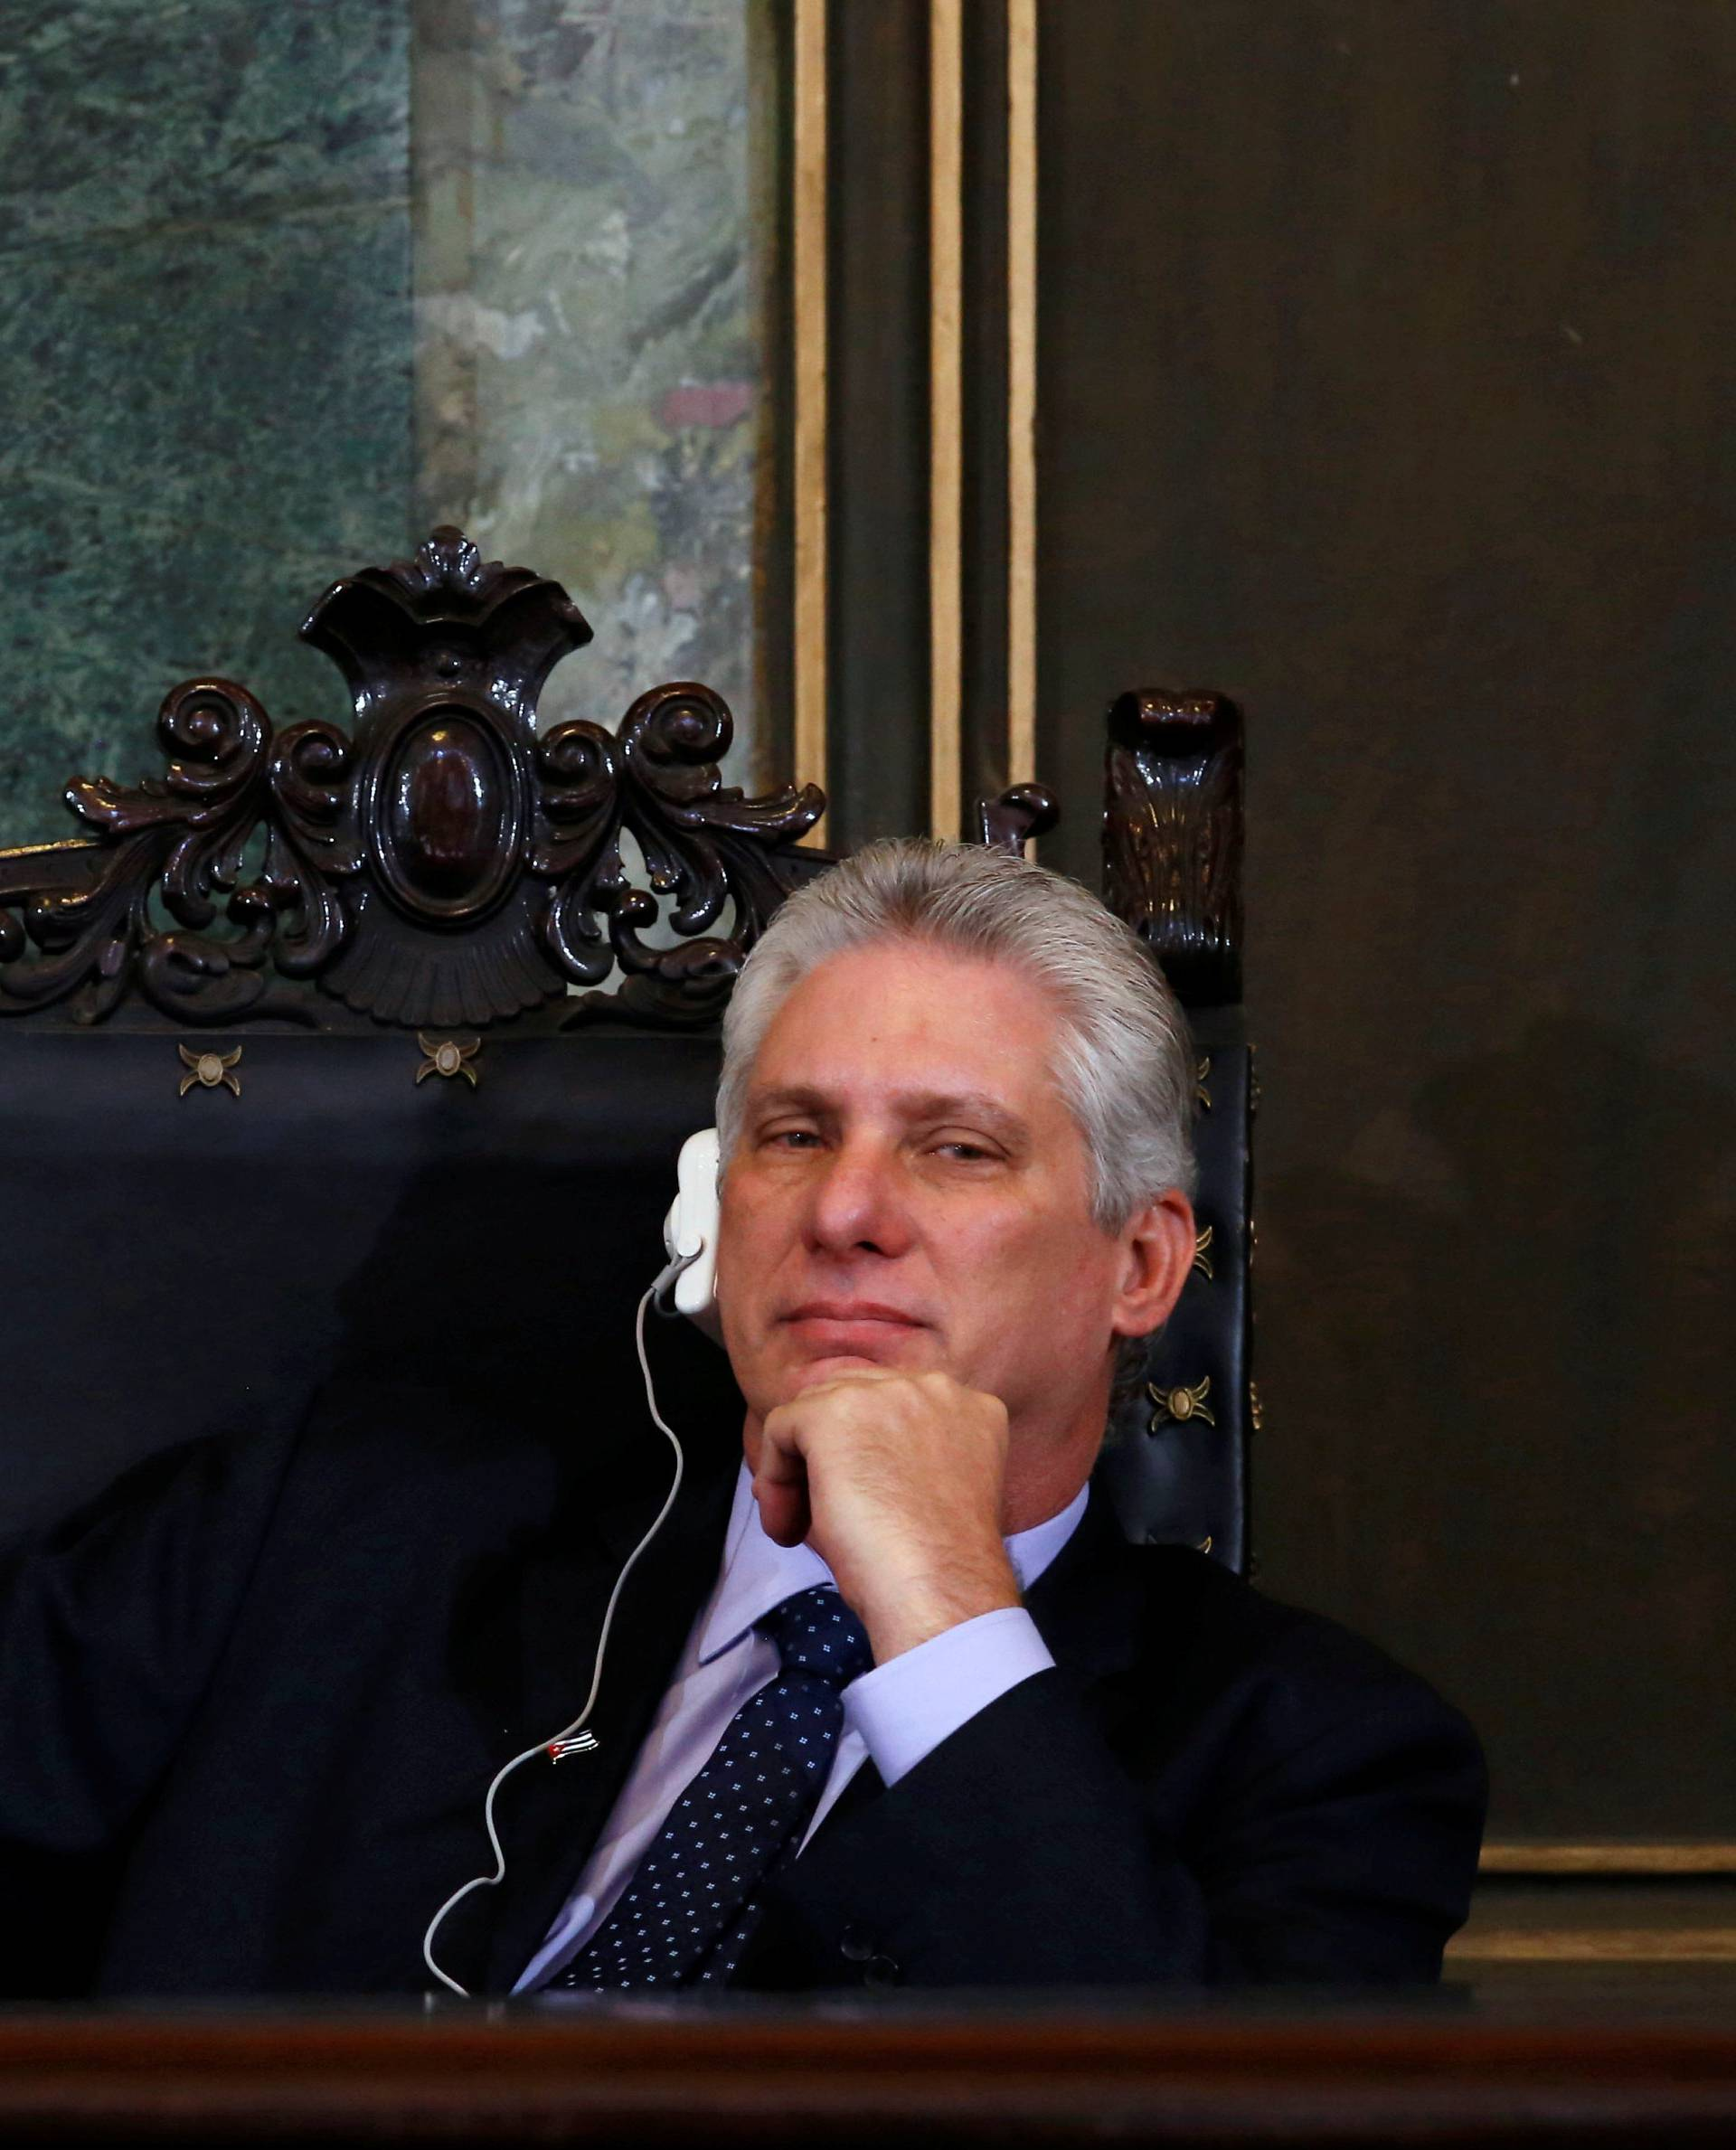 Cuba's First Vice-President Miguel Diaz-Canel listens to Vietnam's Communist Party Secretary General Nguyen Phu Trong at the University of Havana